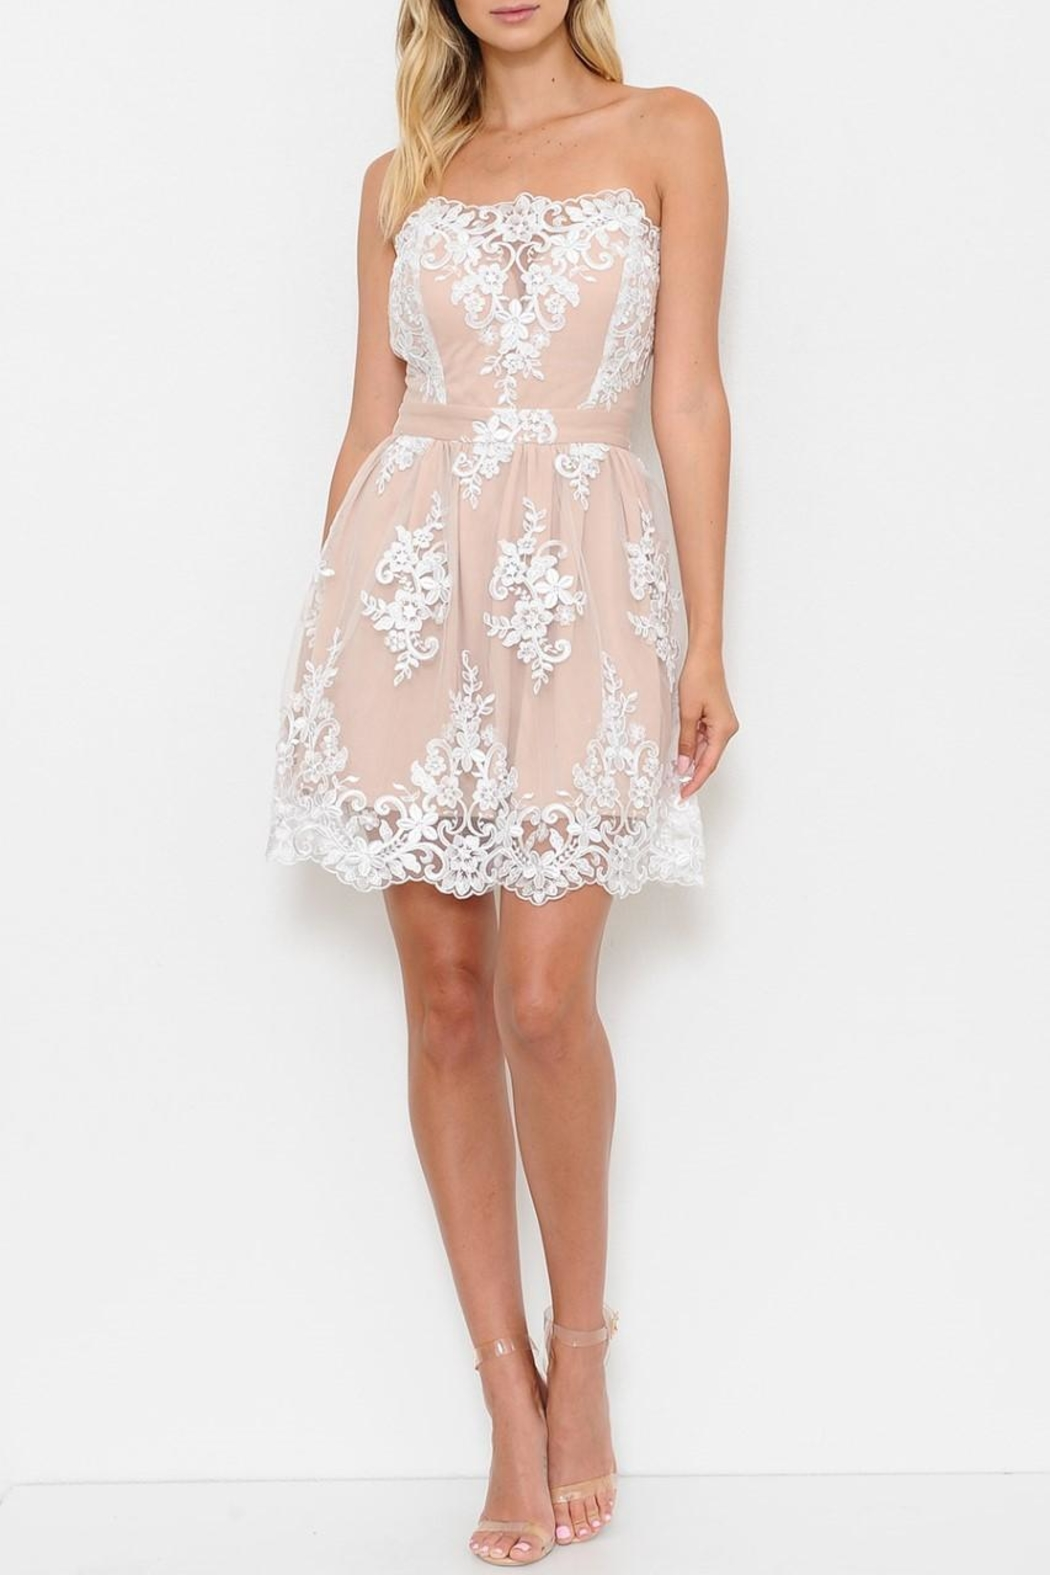 L'atiste White Lace Dress - Main Image